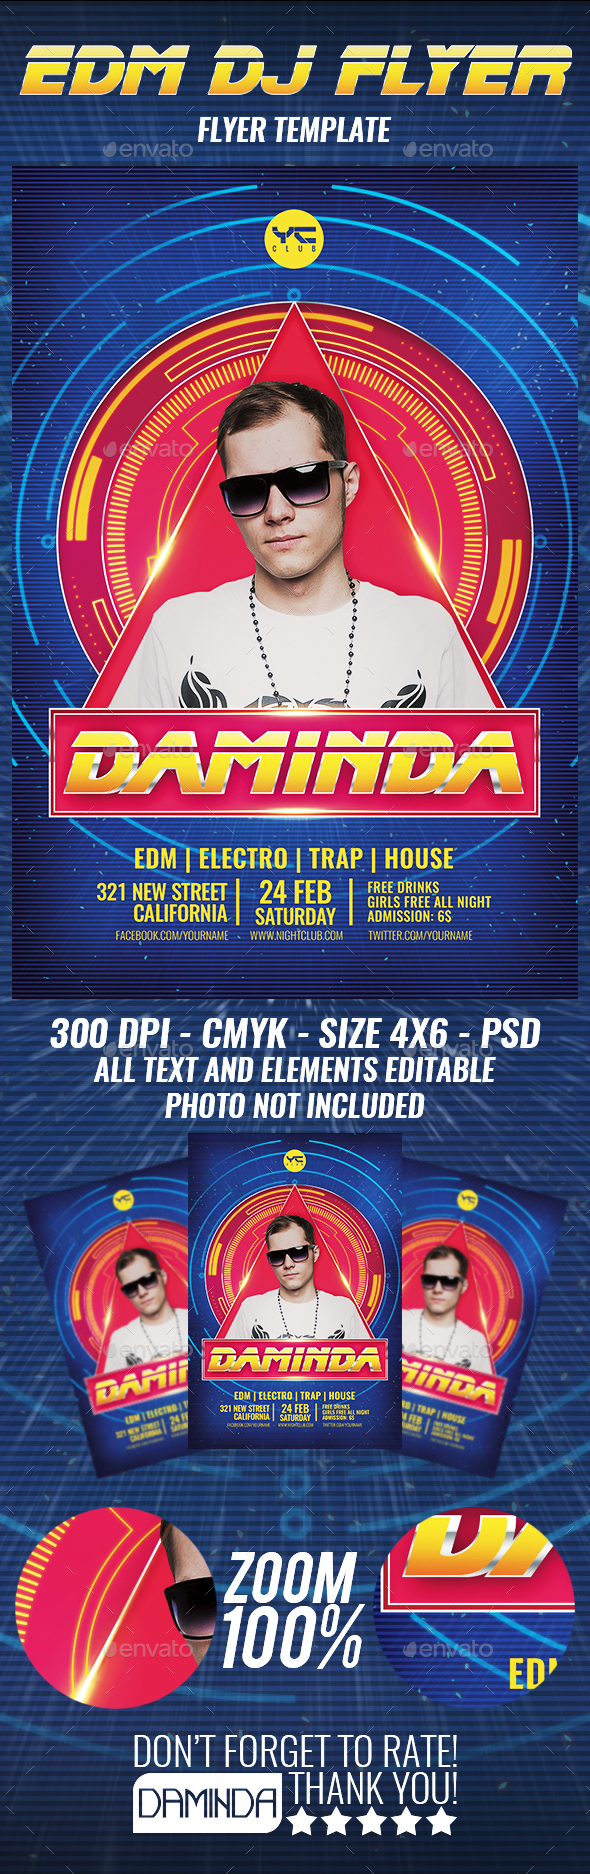 Electro Dj Poster 10 Flyer Template - Clubs & Parties Events